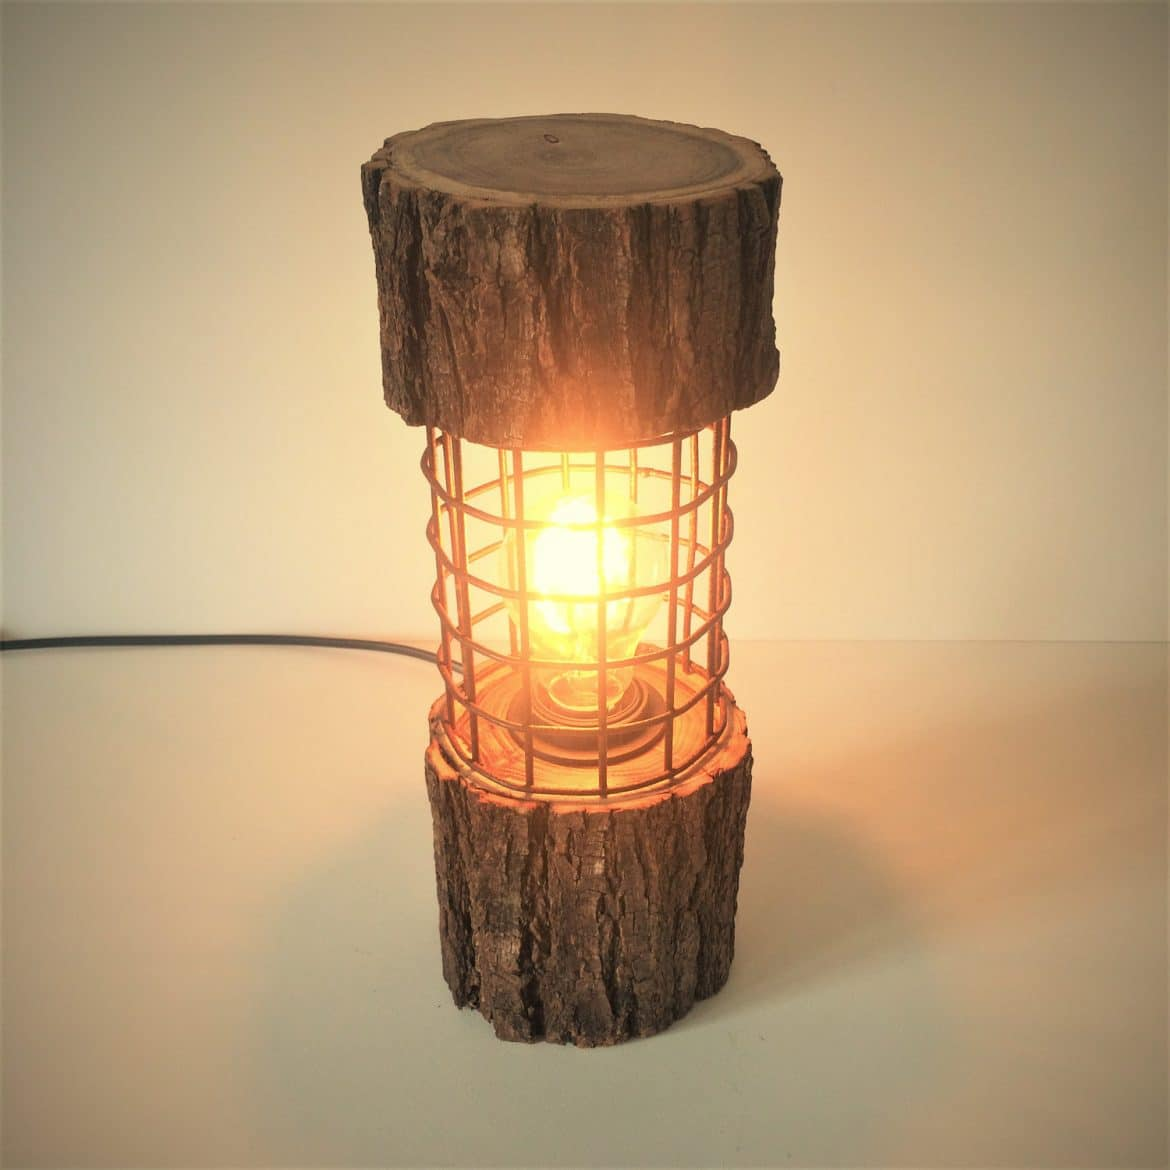 Wooden Table Lamps Designs Rustic Log Lamp With Metal Cage Id Lights